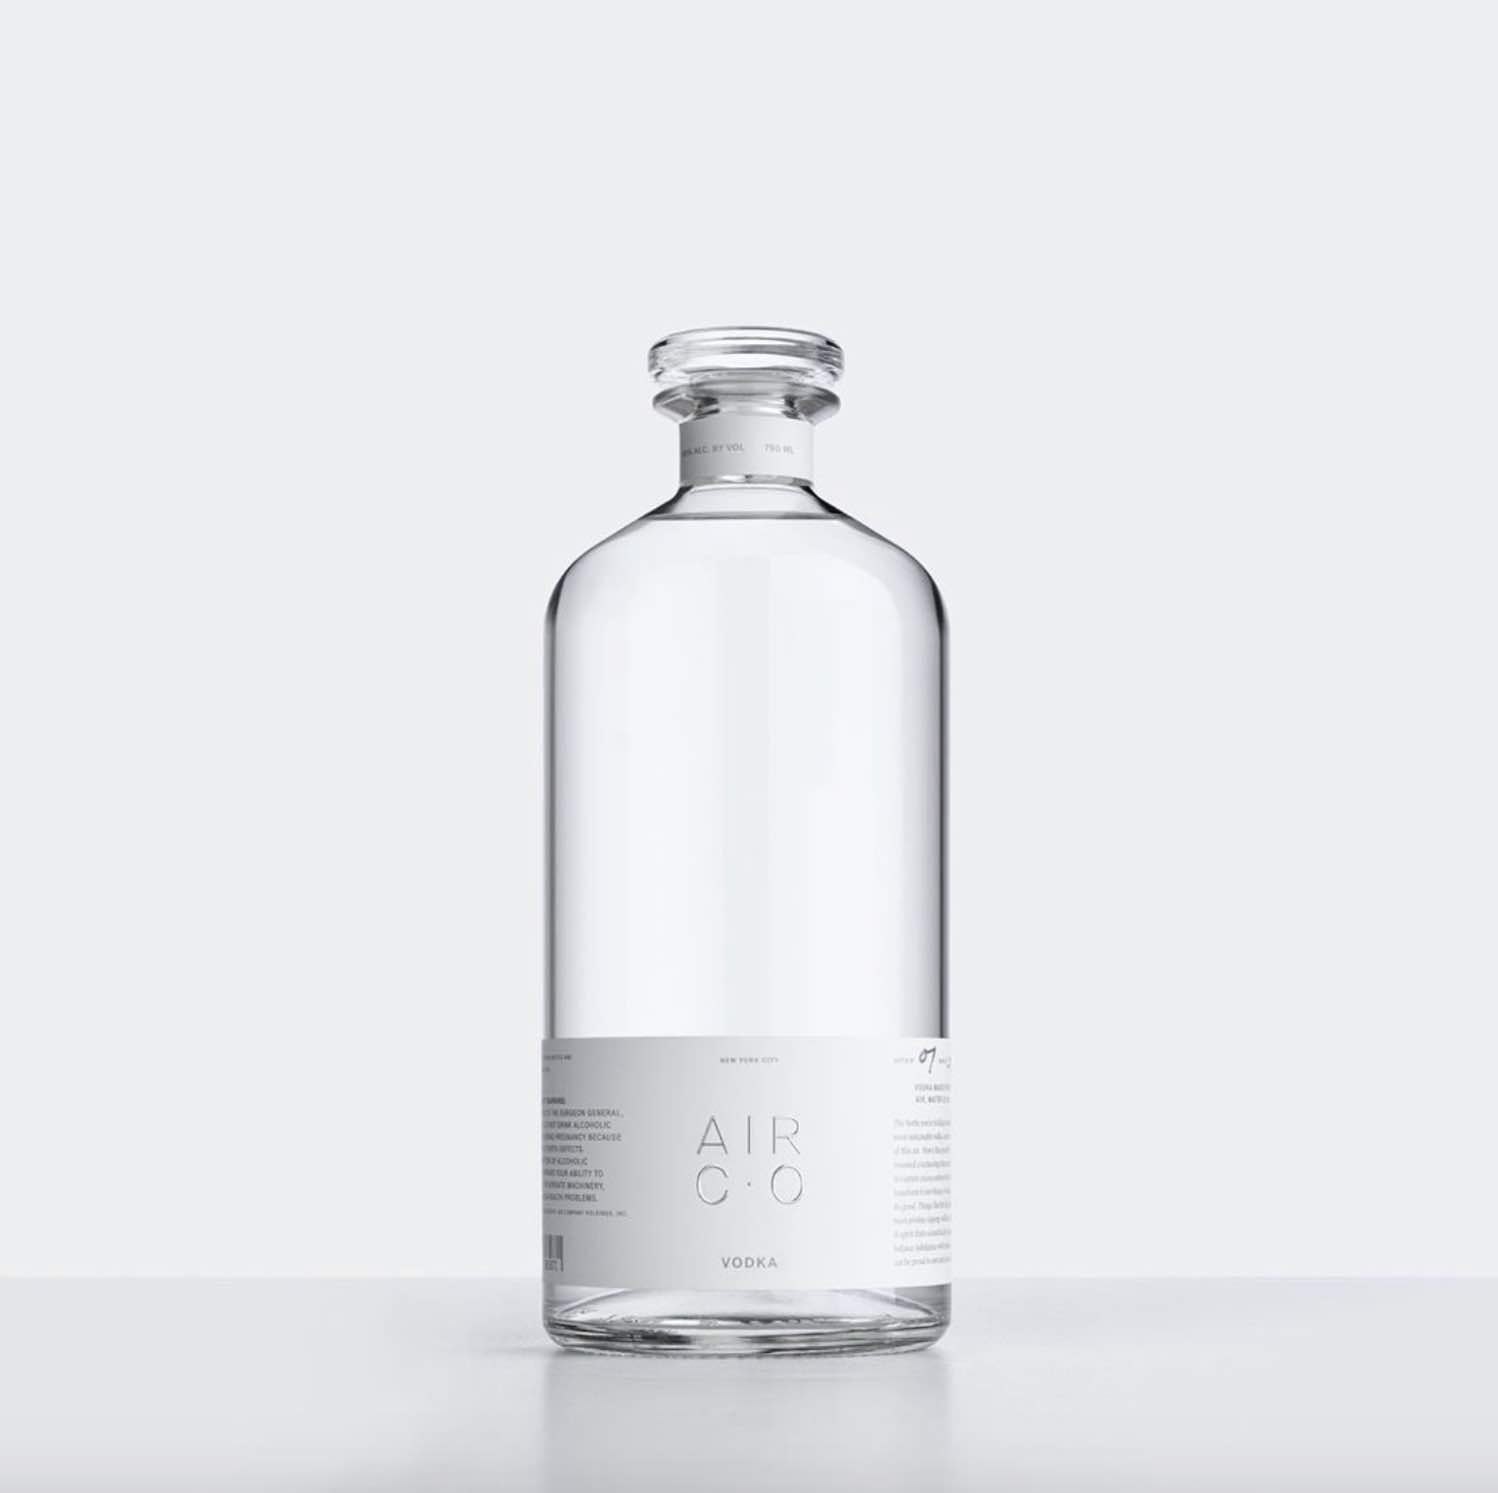 Air co. vodka by Joe Ducet x Partners - Photo via IG by @aircompany.